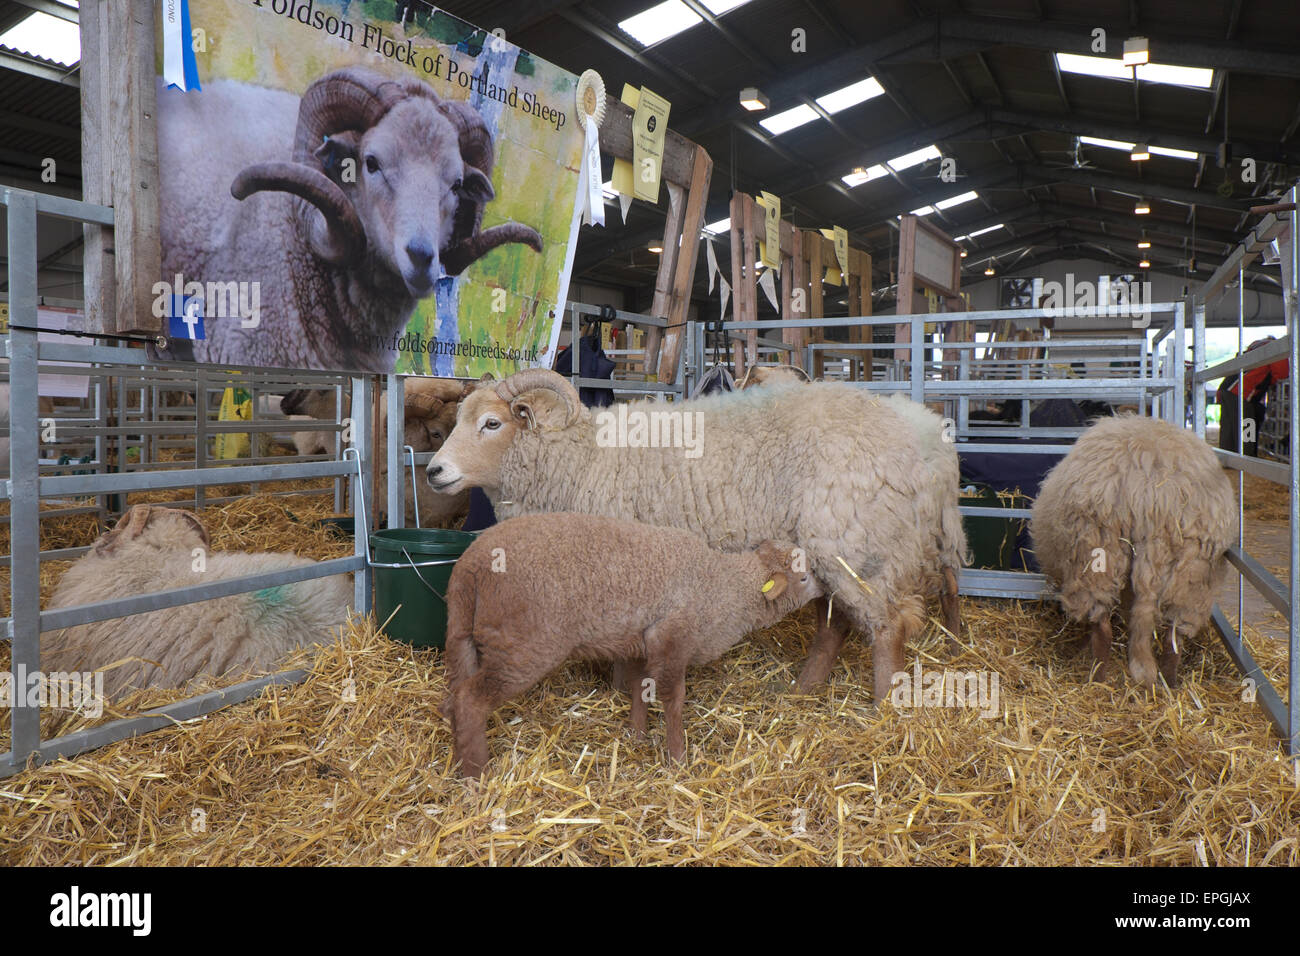 Portland Sheep a rare breed ewe and lamb on display at the Royal Welsh Spring Festival in May 2015 - Stock Image